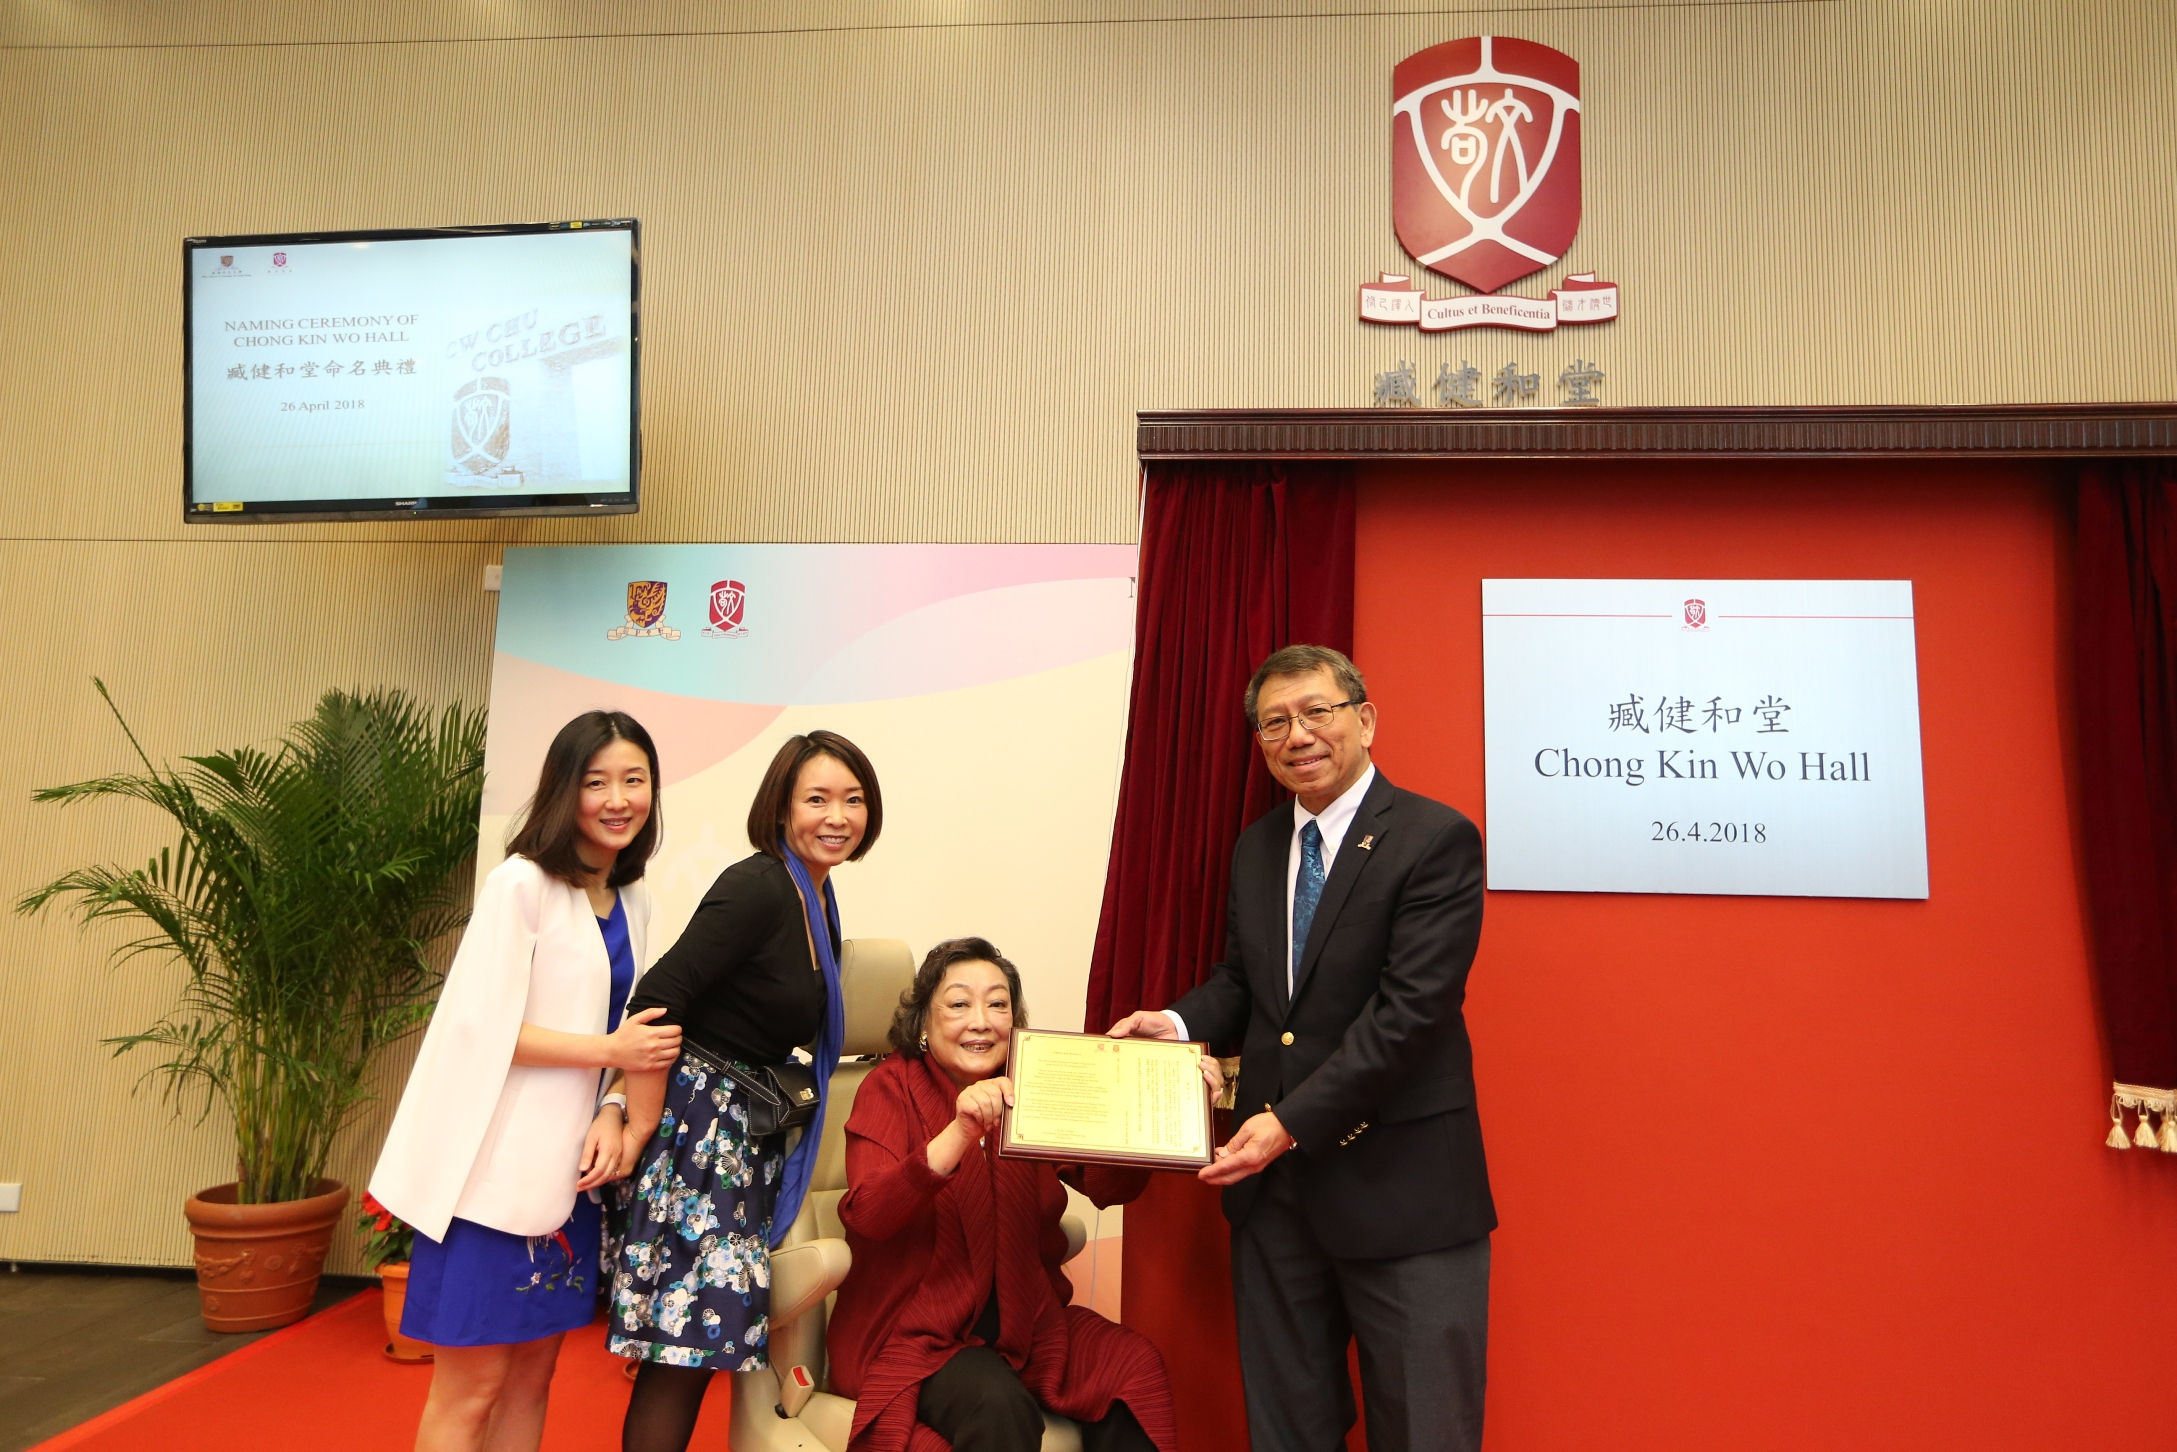 Professor Rocky S. Tuan, Vice-Chancellor and President, CUHK (first right), presented a souvenir to Madam Chong Kin Wo (second right).